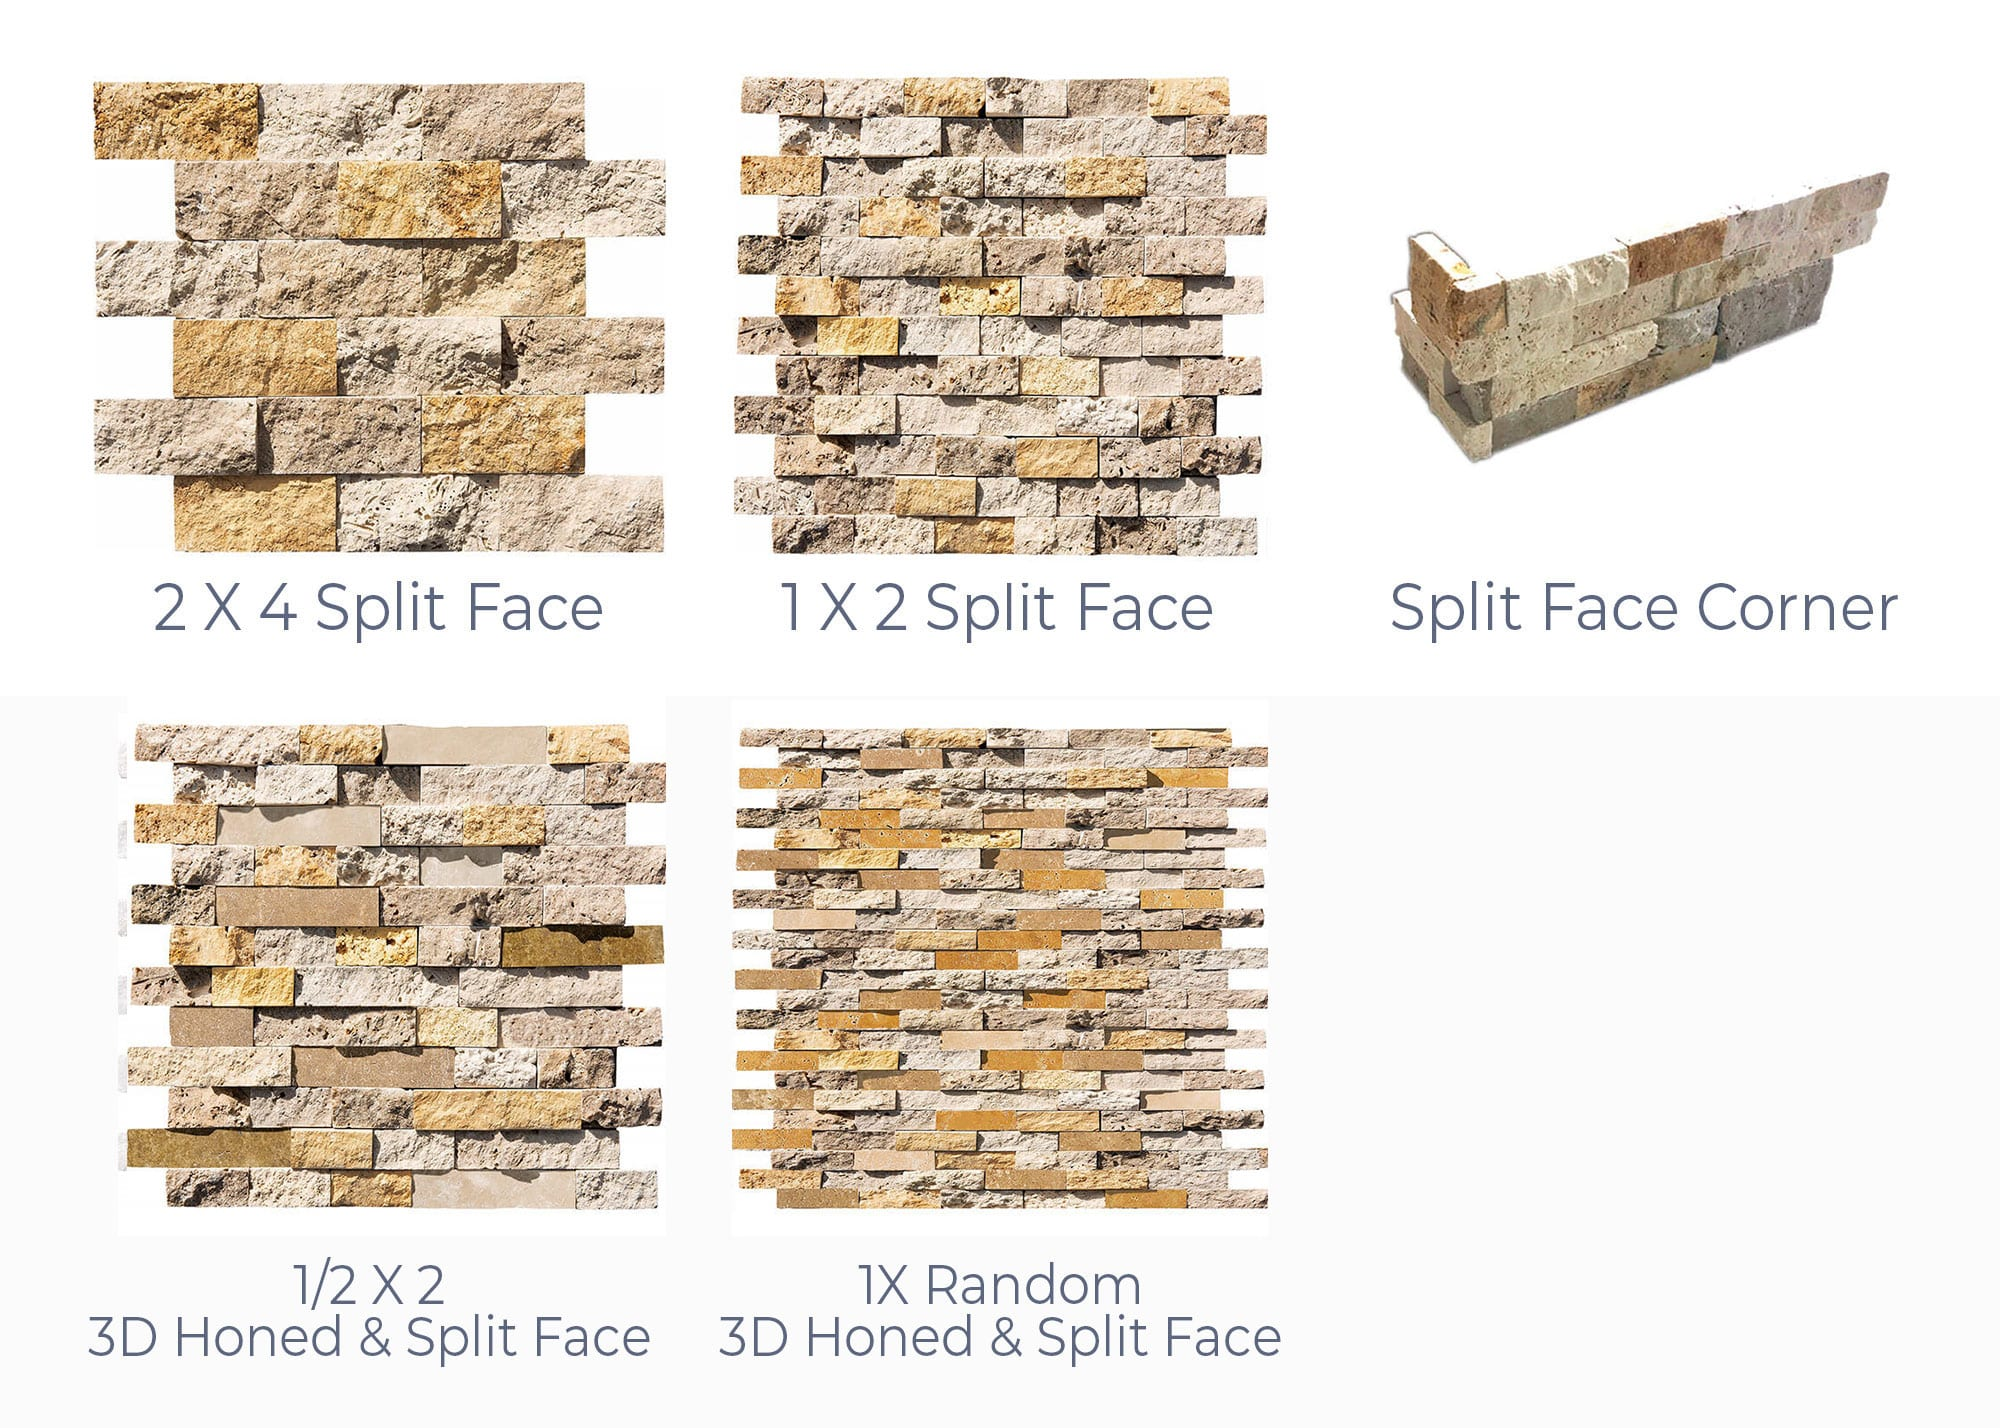 Stoneline-Group-Mix-Travertine-Marble-Collection-Marble-Veneer-3D-Honed-Split-Face-Corner-Pictures